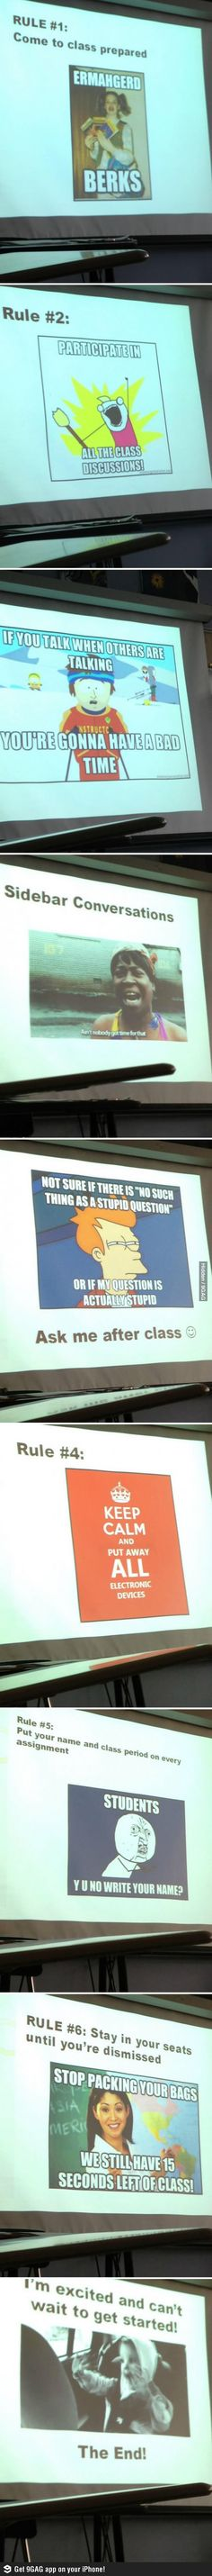 Best class expectations lecture ever. Would be great to use in high school classes. Would your high schoolers enjoy these PowerPoint slides?